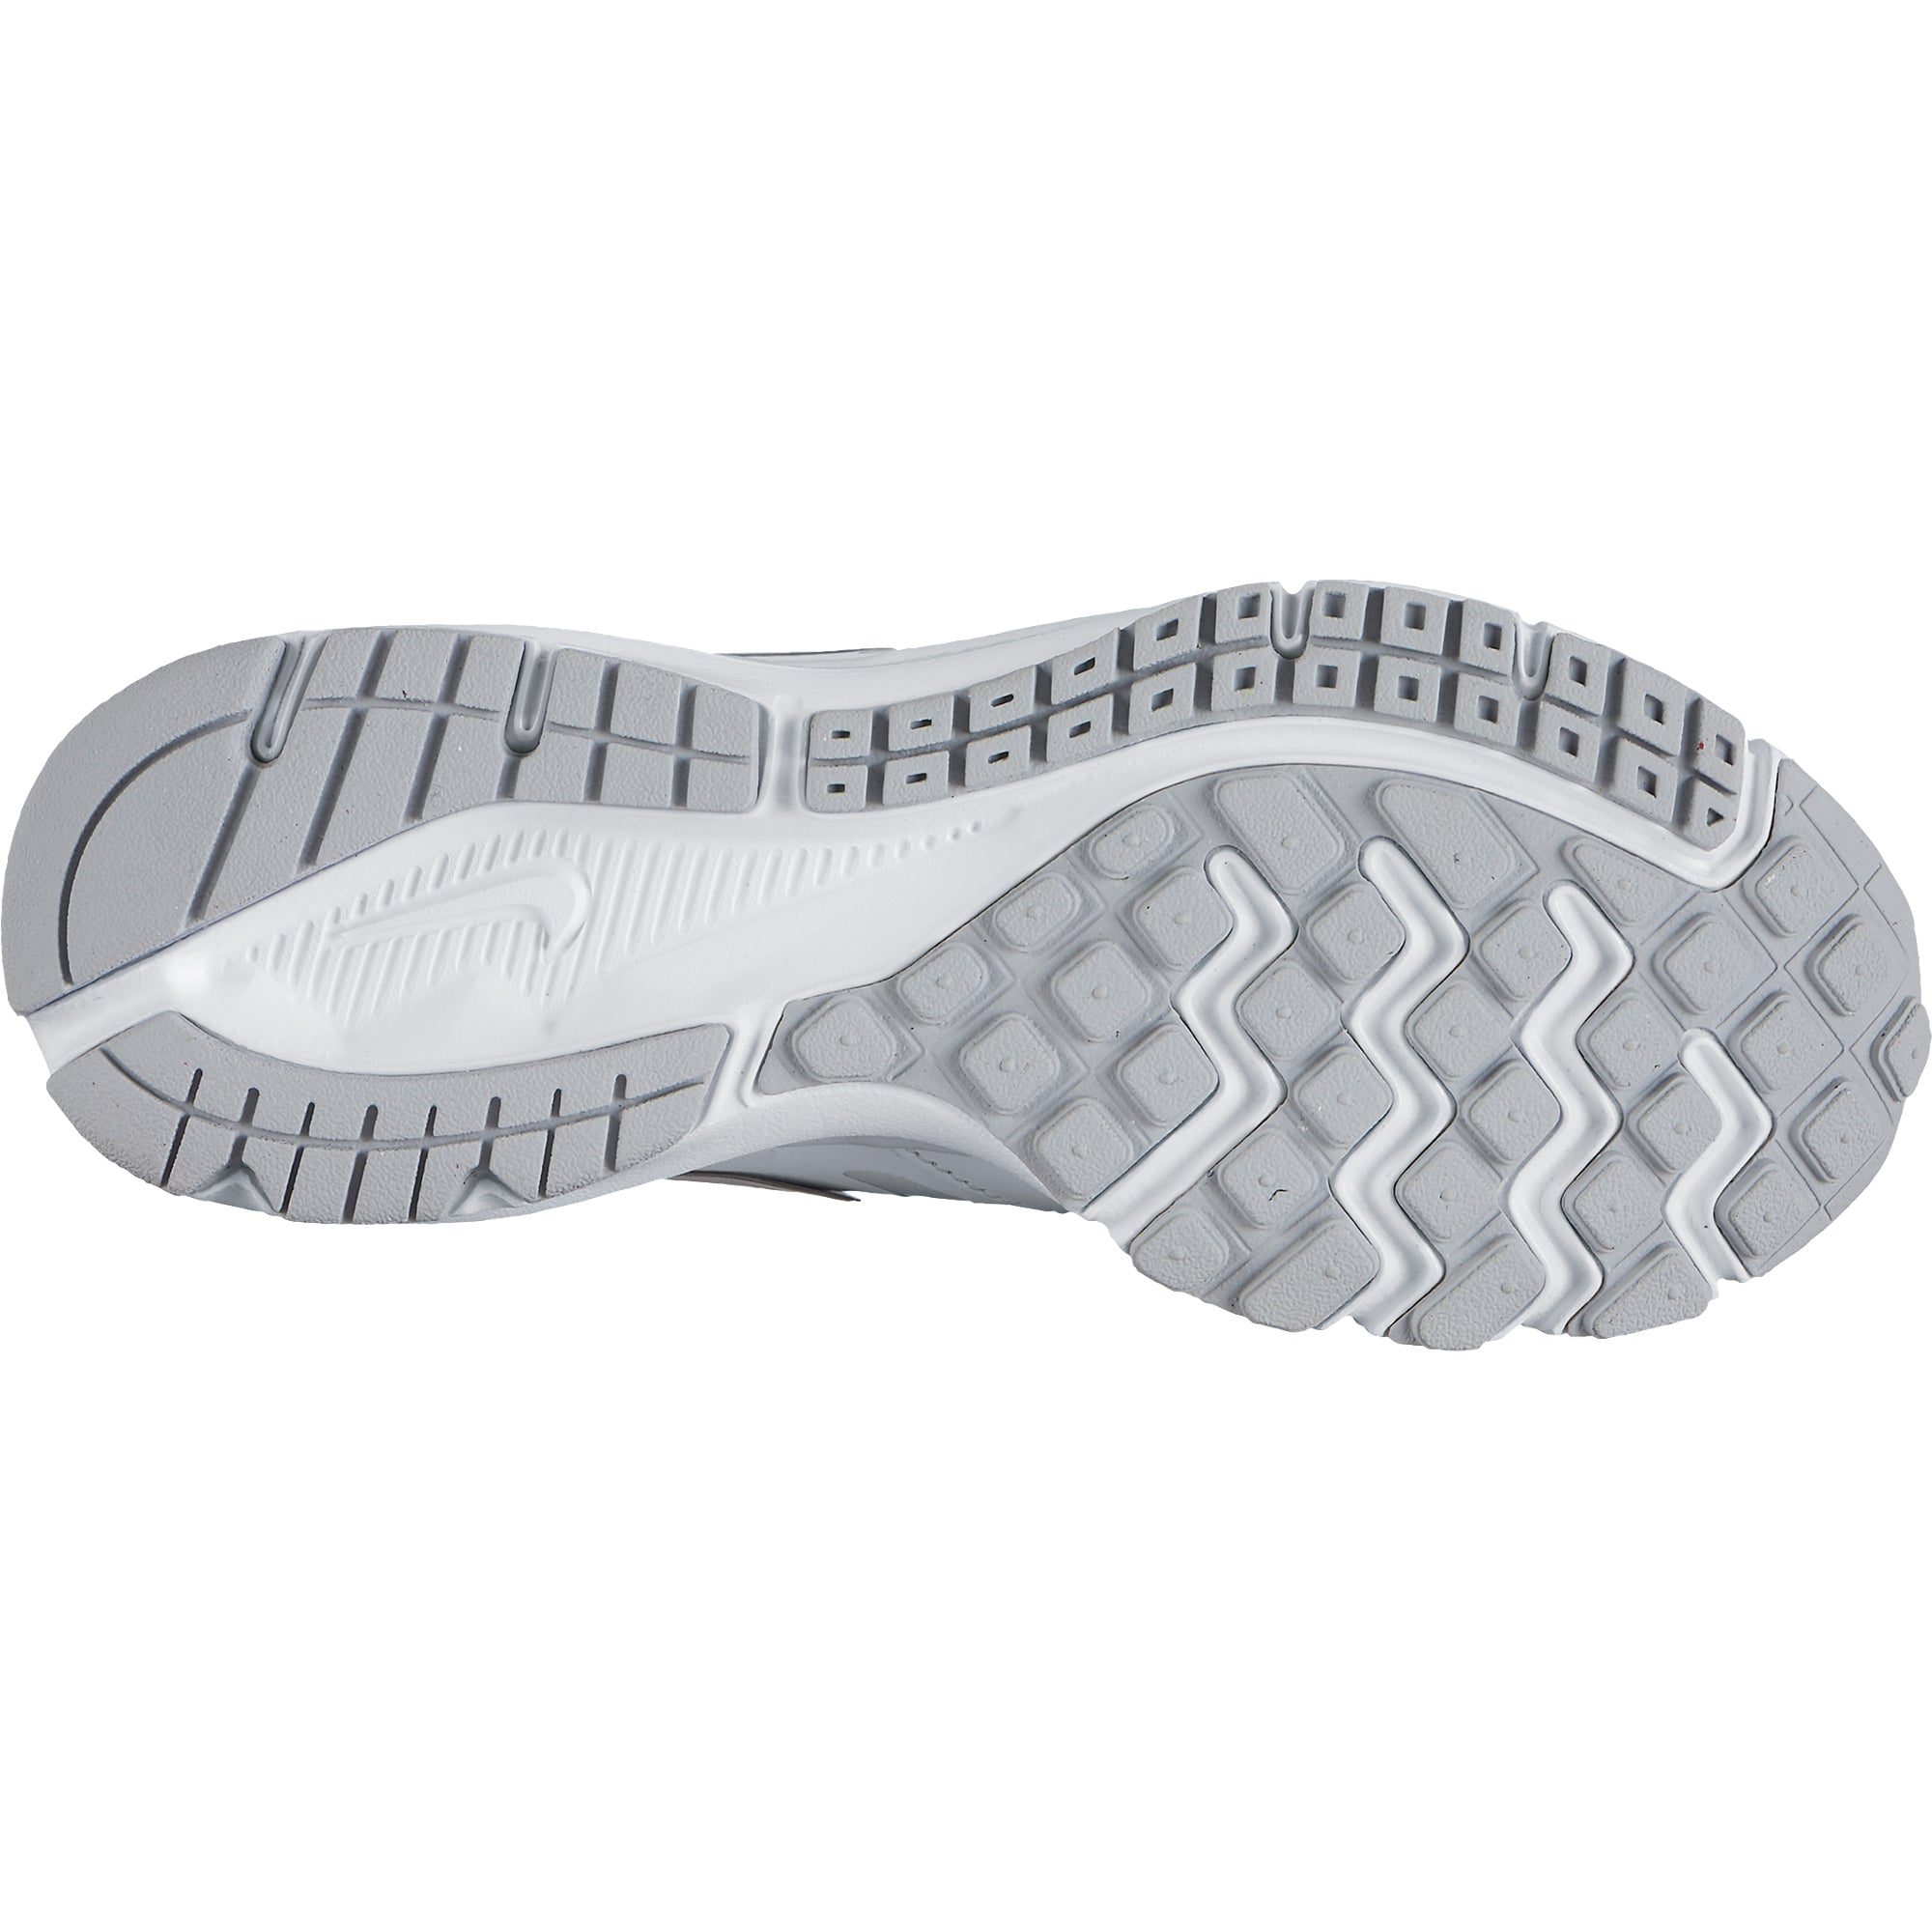 Nike Downshifter 6 Leather 832883-100